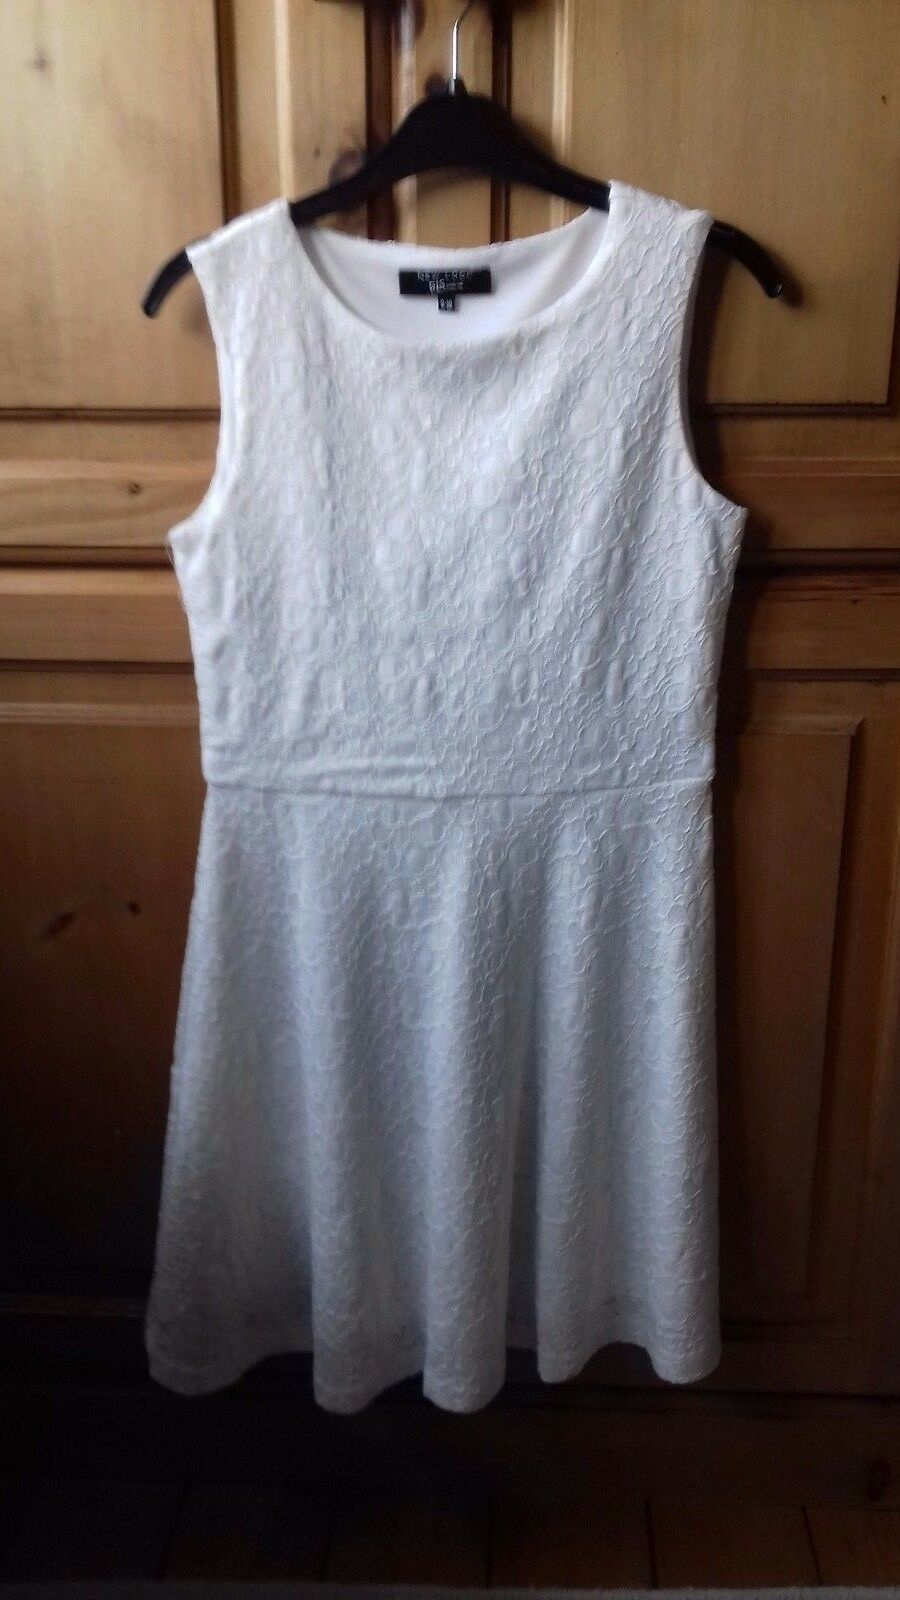 GIRLS WHITE LACE DRESS CONFIRMATION BRIDESMAID - 9-10 YEARS